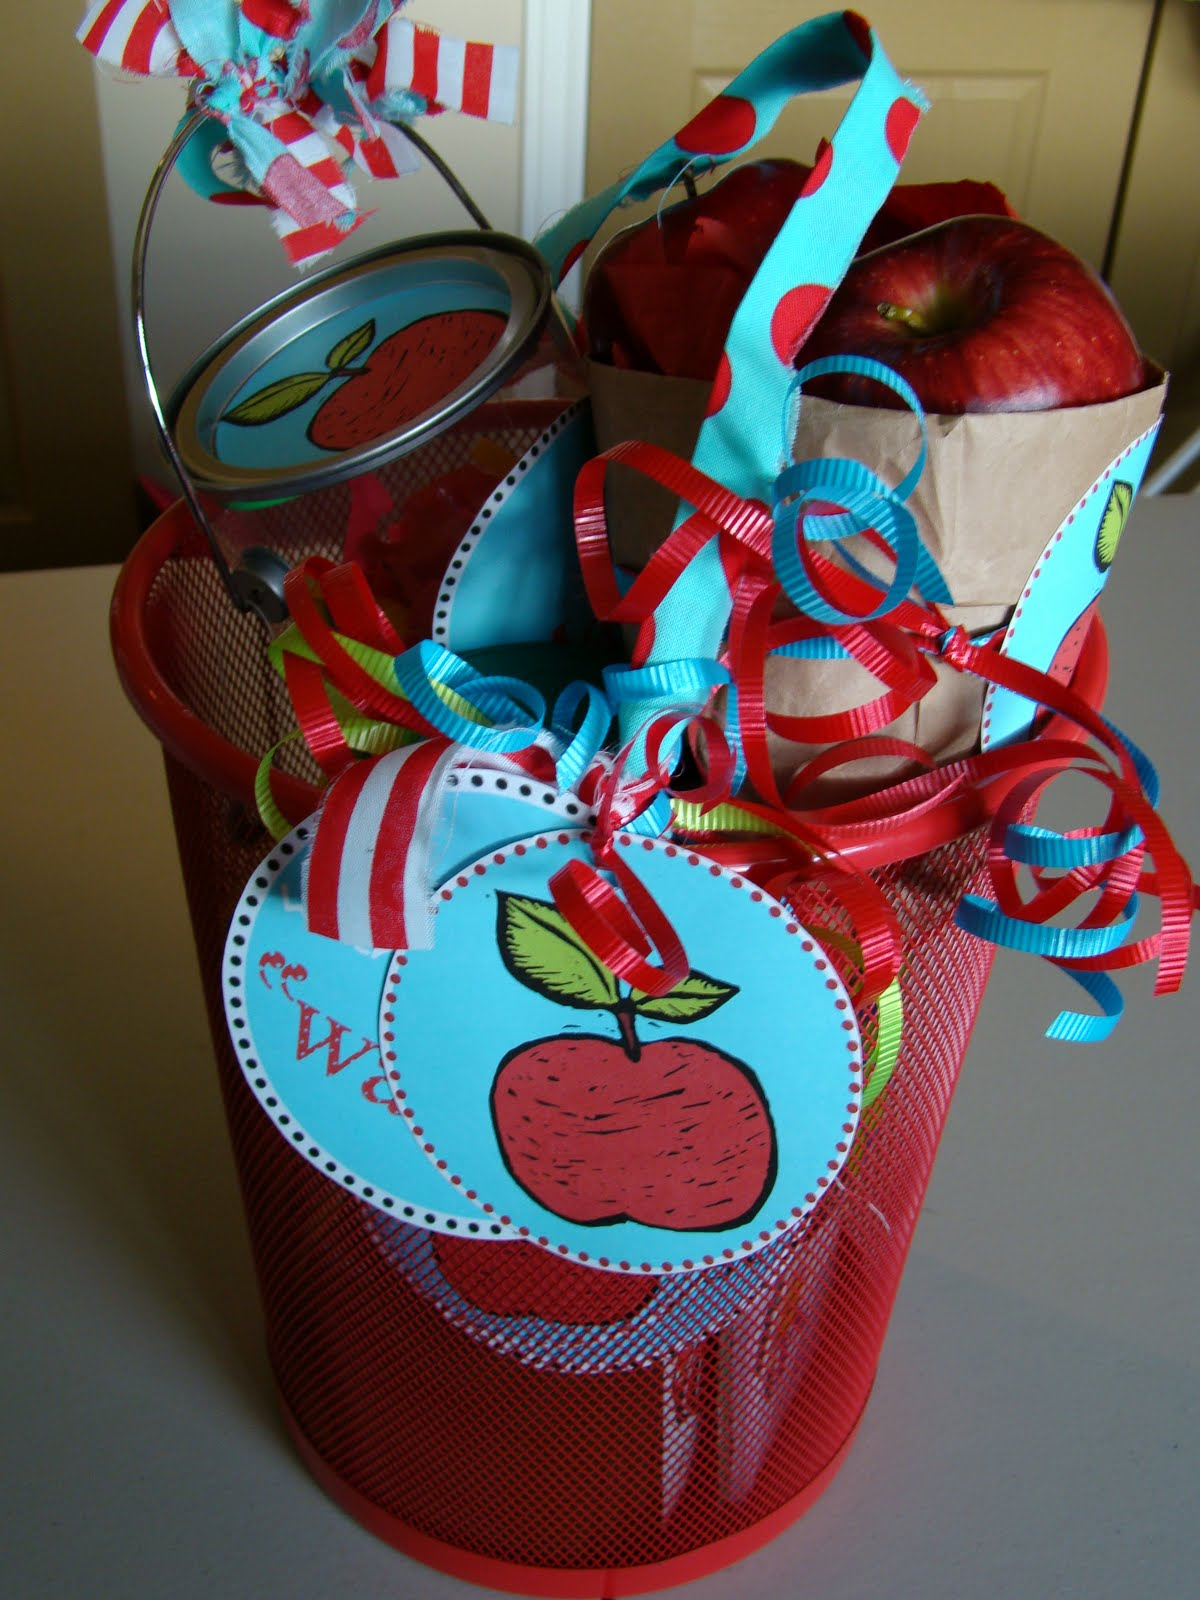 Teacher Gift For Christmas: THe FiCkLe PiCkLe: Teacher Appreciation Gifts